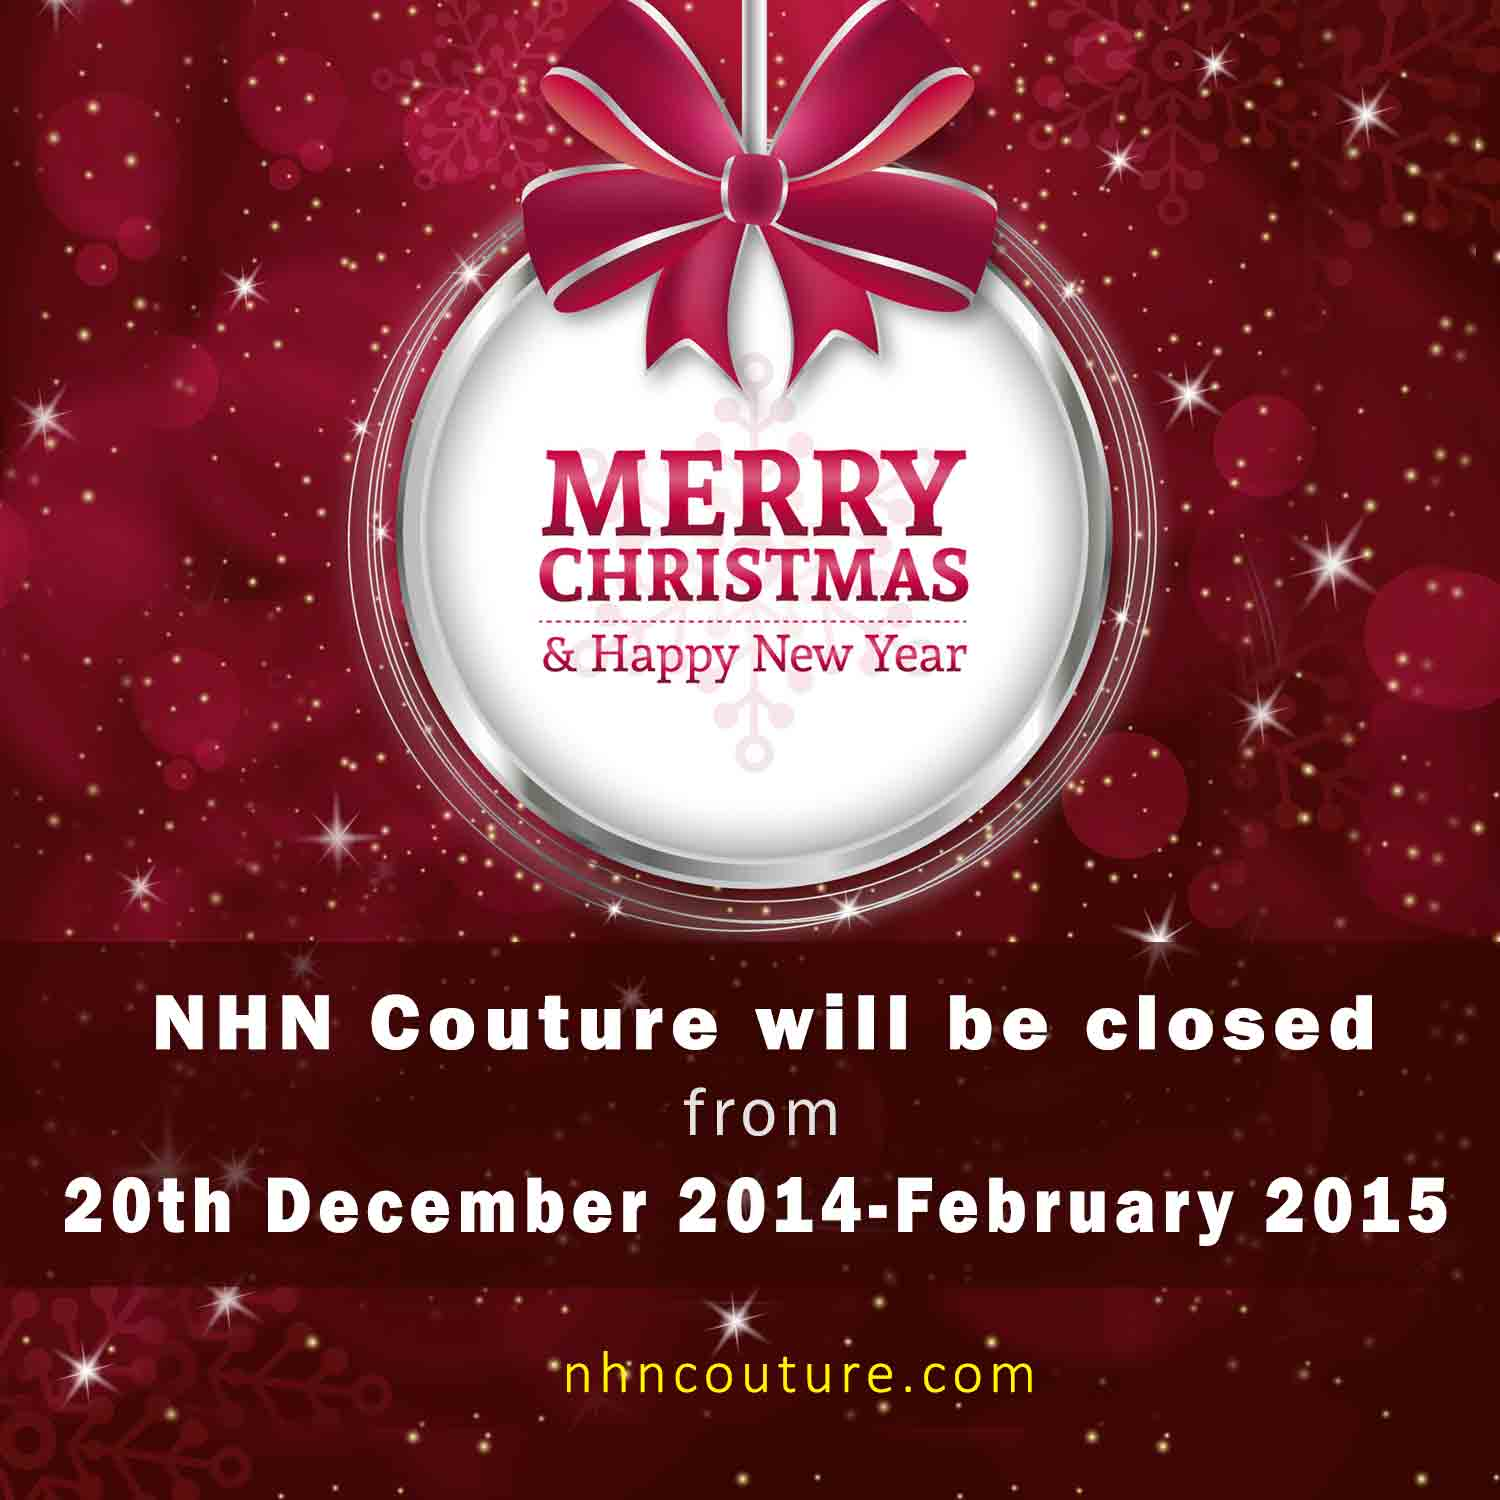 Holiday-Greetings-NHN-Couture-WP